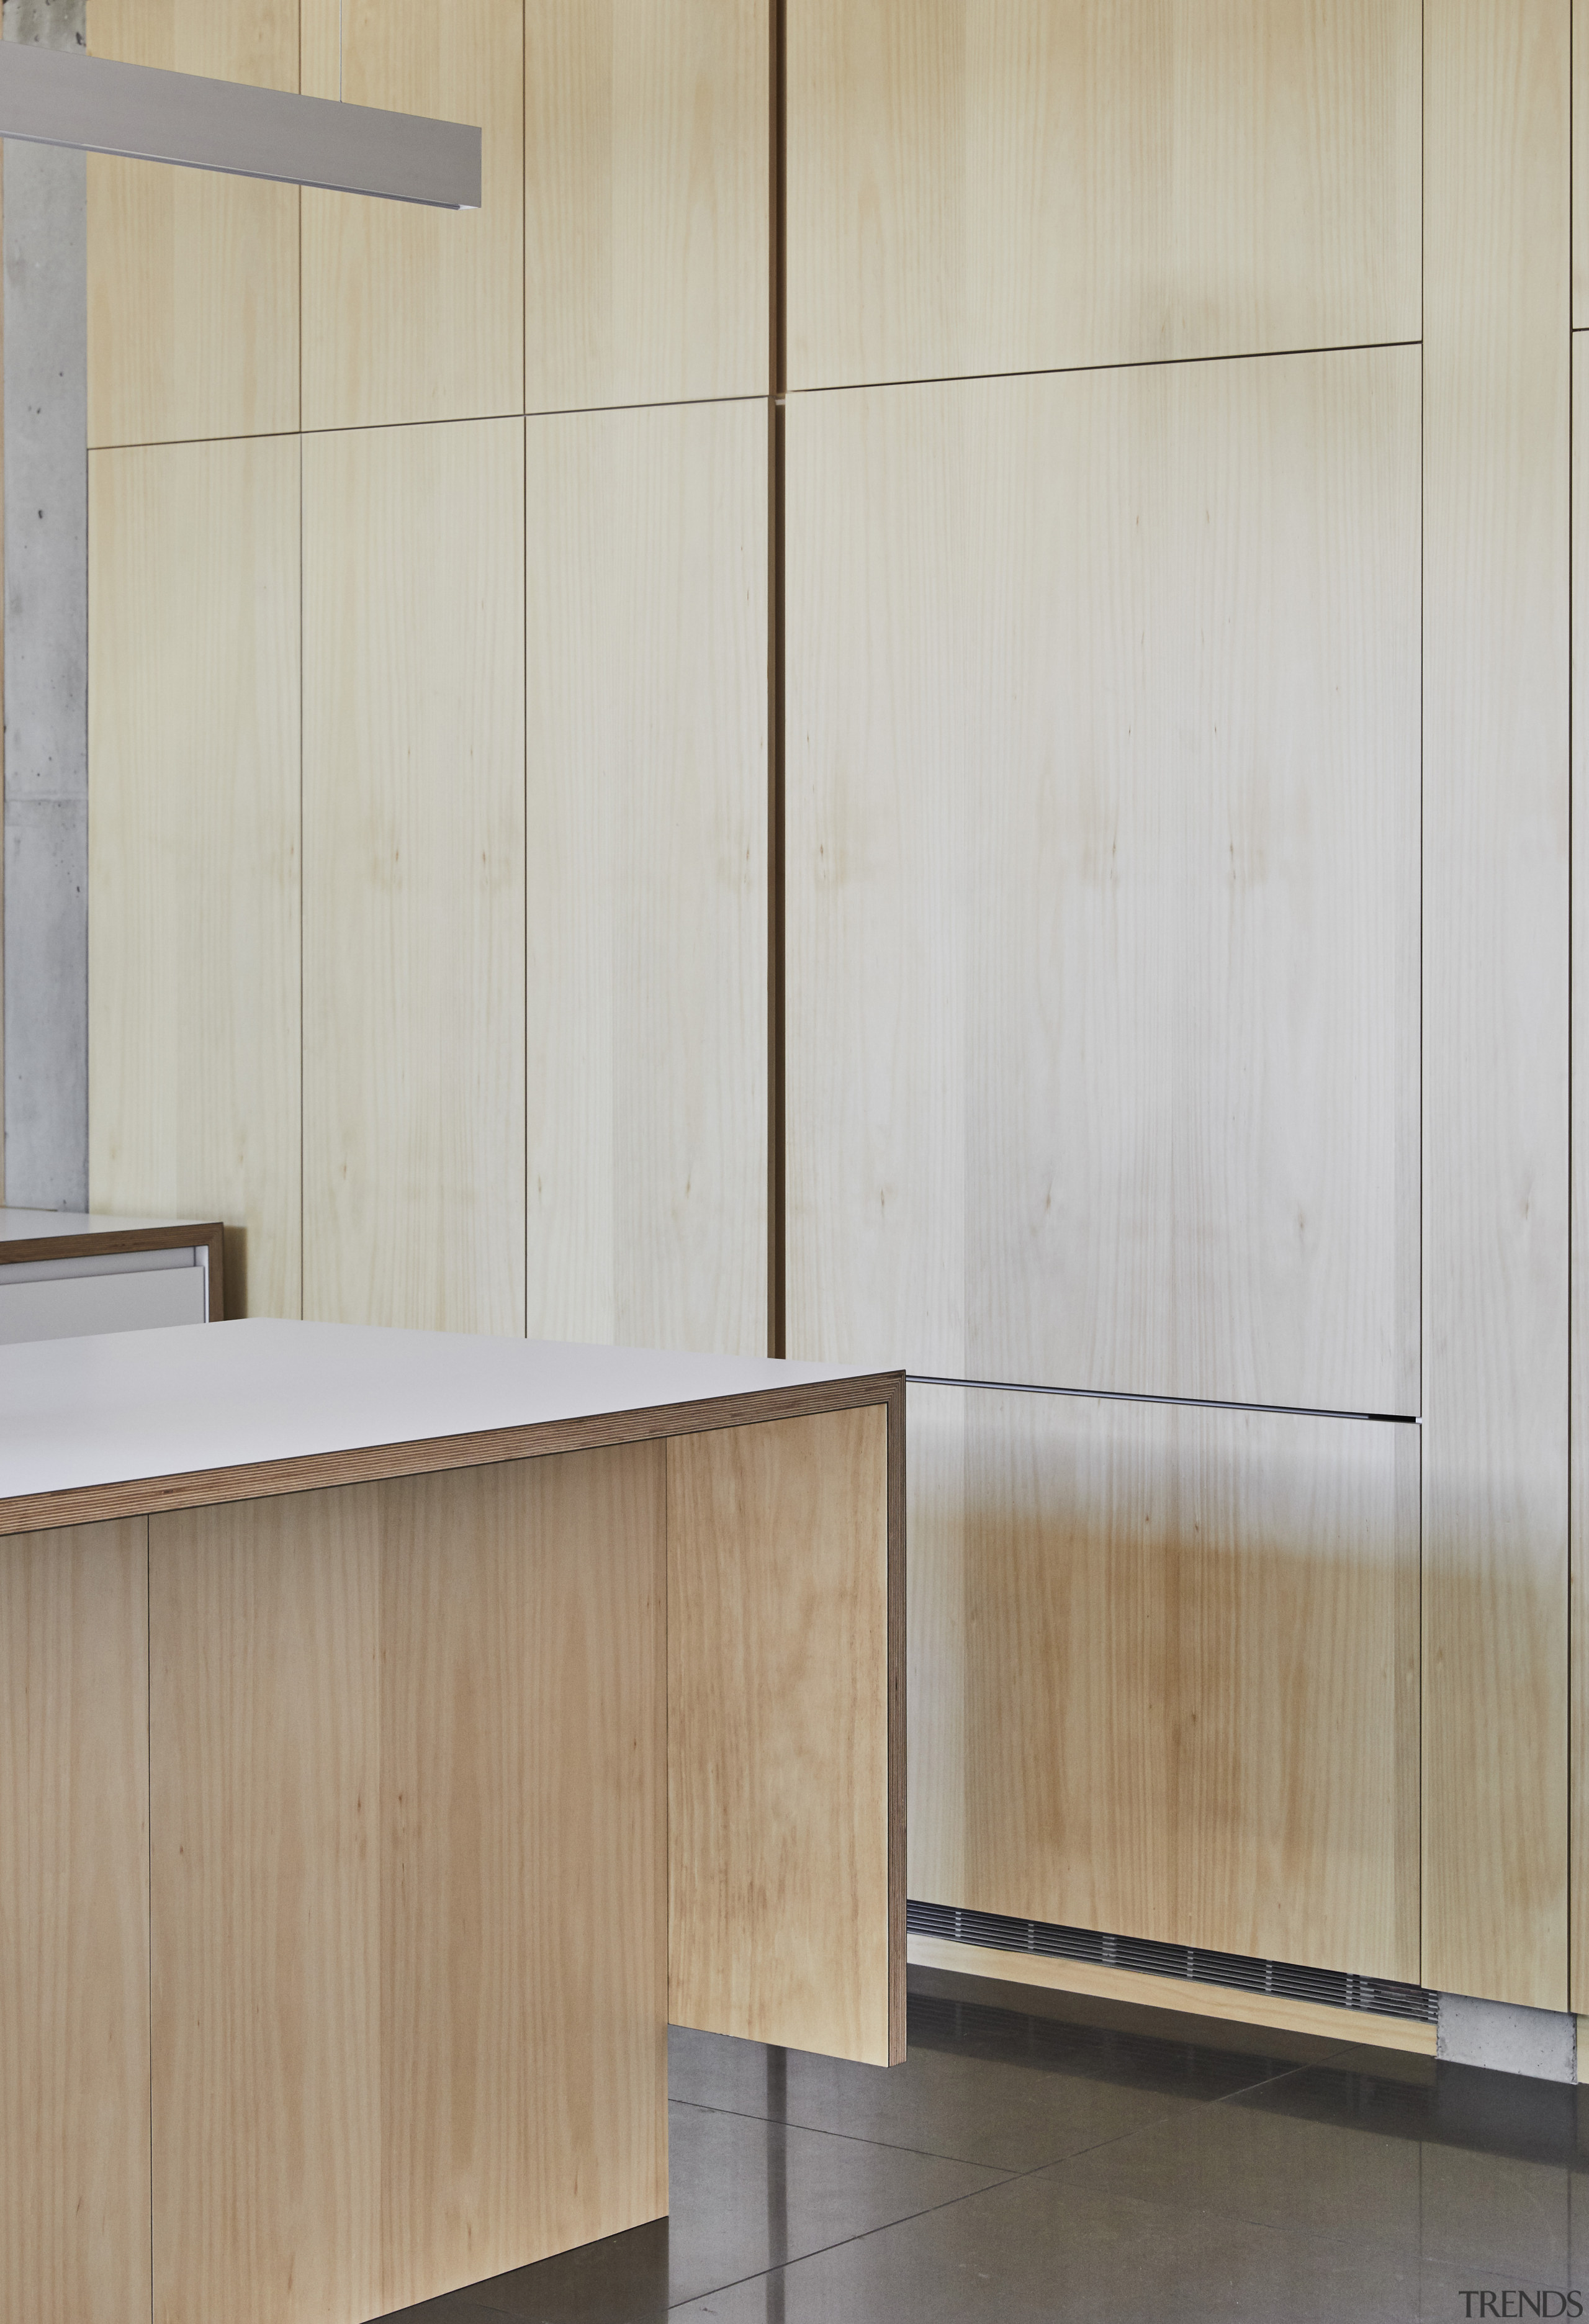 This kitchen's hoop pine veneer cabinetry is repeated architecture, cabinetry, cupboard, floor, flooring, furniture, interior design, material property, plywood, property, room, wall, wood, wood stain, gray